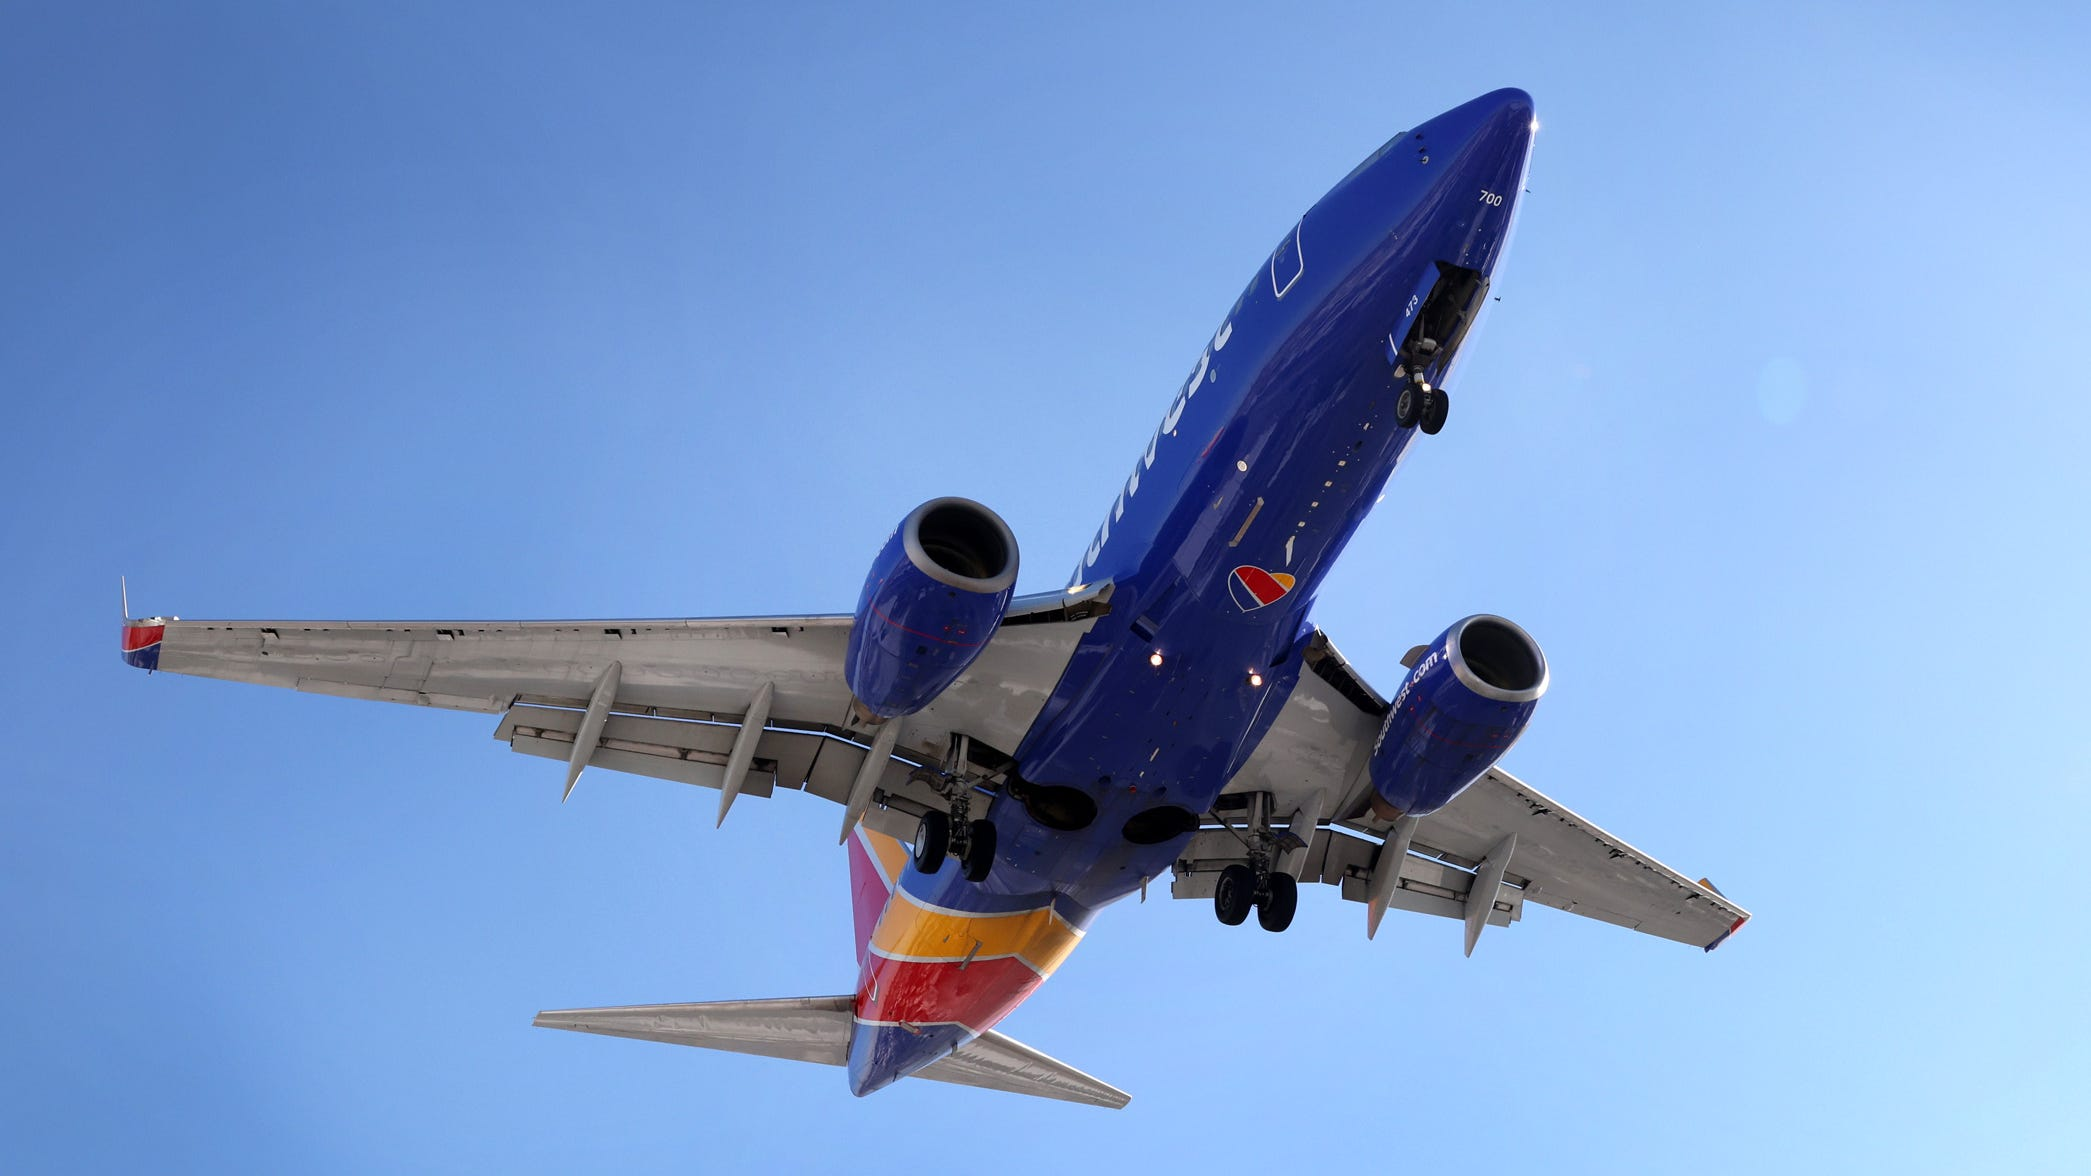 More weekend travel headaches: Southwest Airlines cancels more than 500 flights, delays 2,500 more